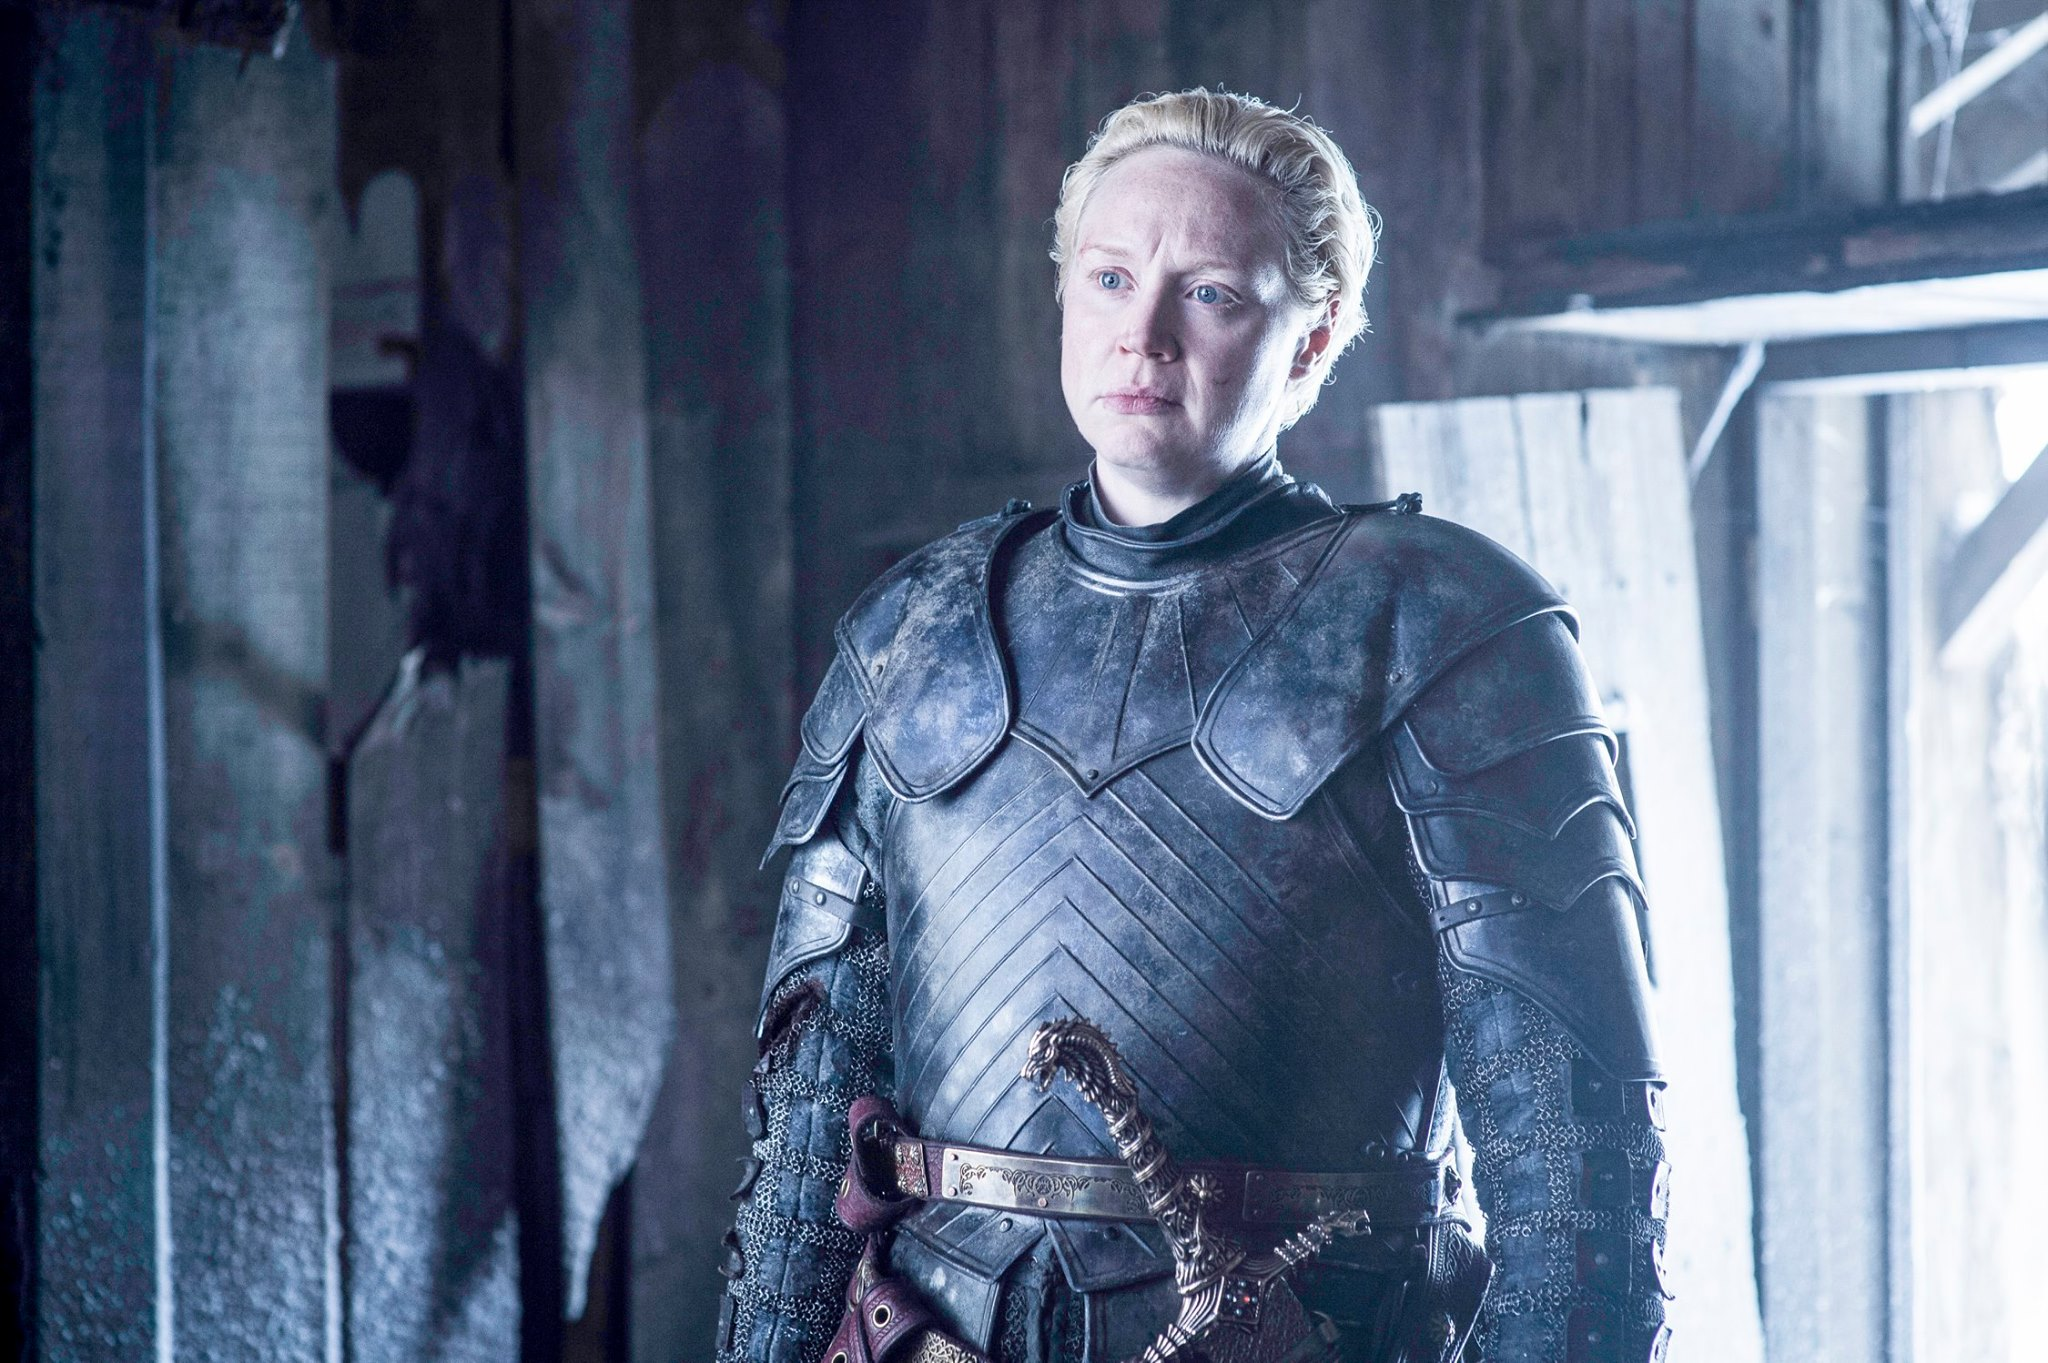 George R.R. Martin Thinks 'Game Of Thrones' Spinoffs Can Happen